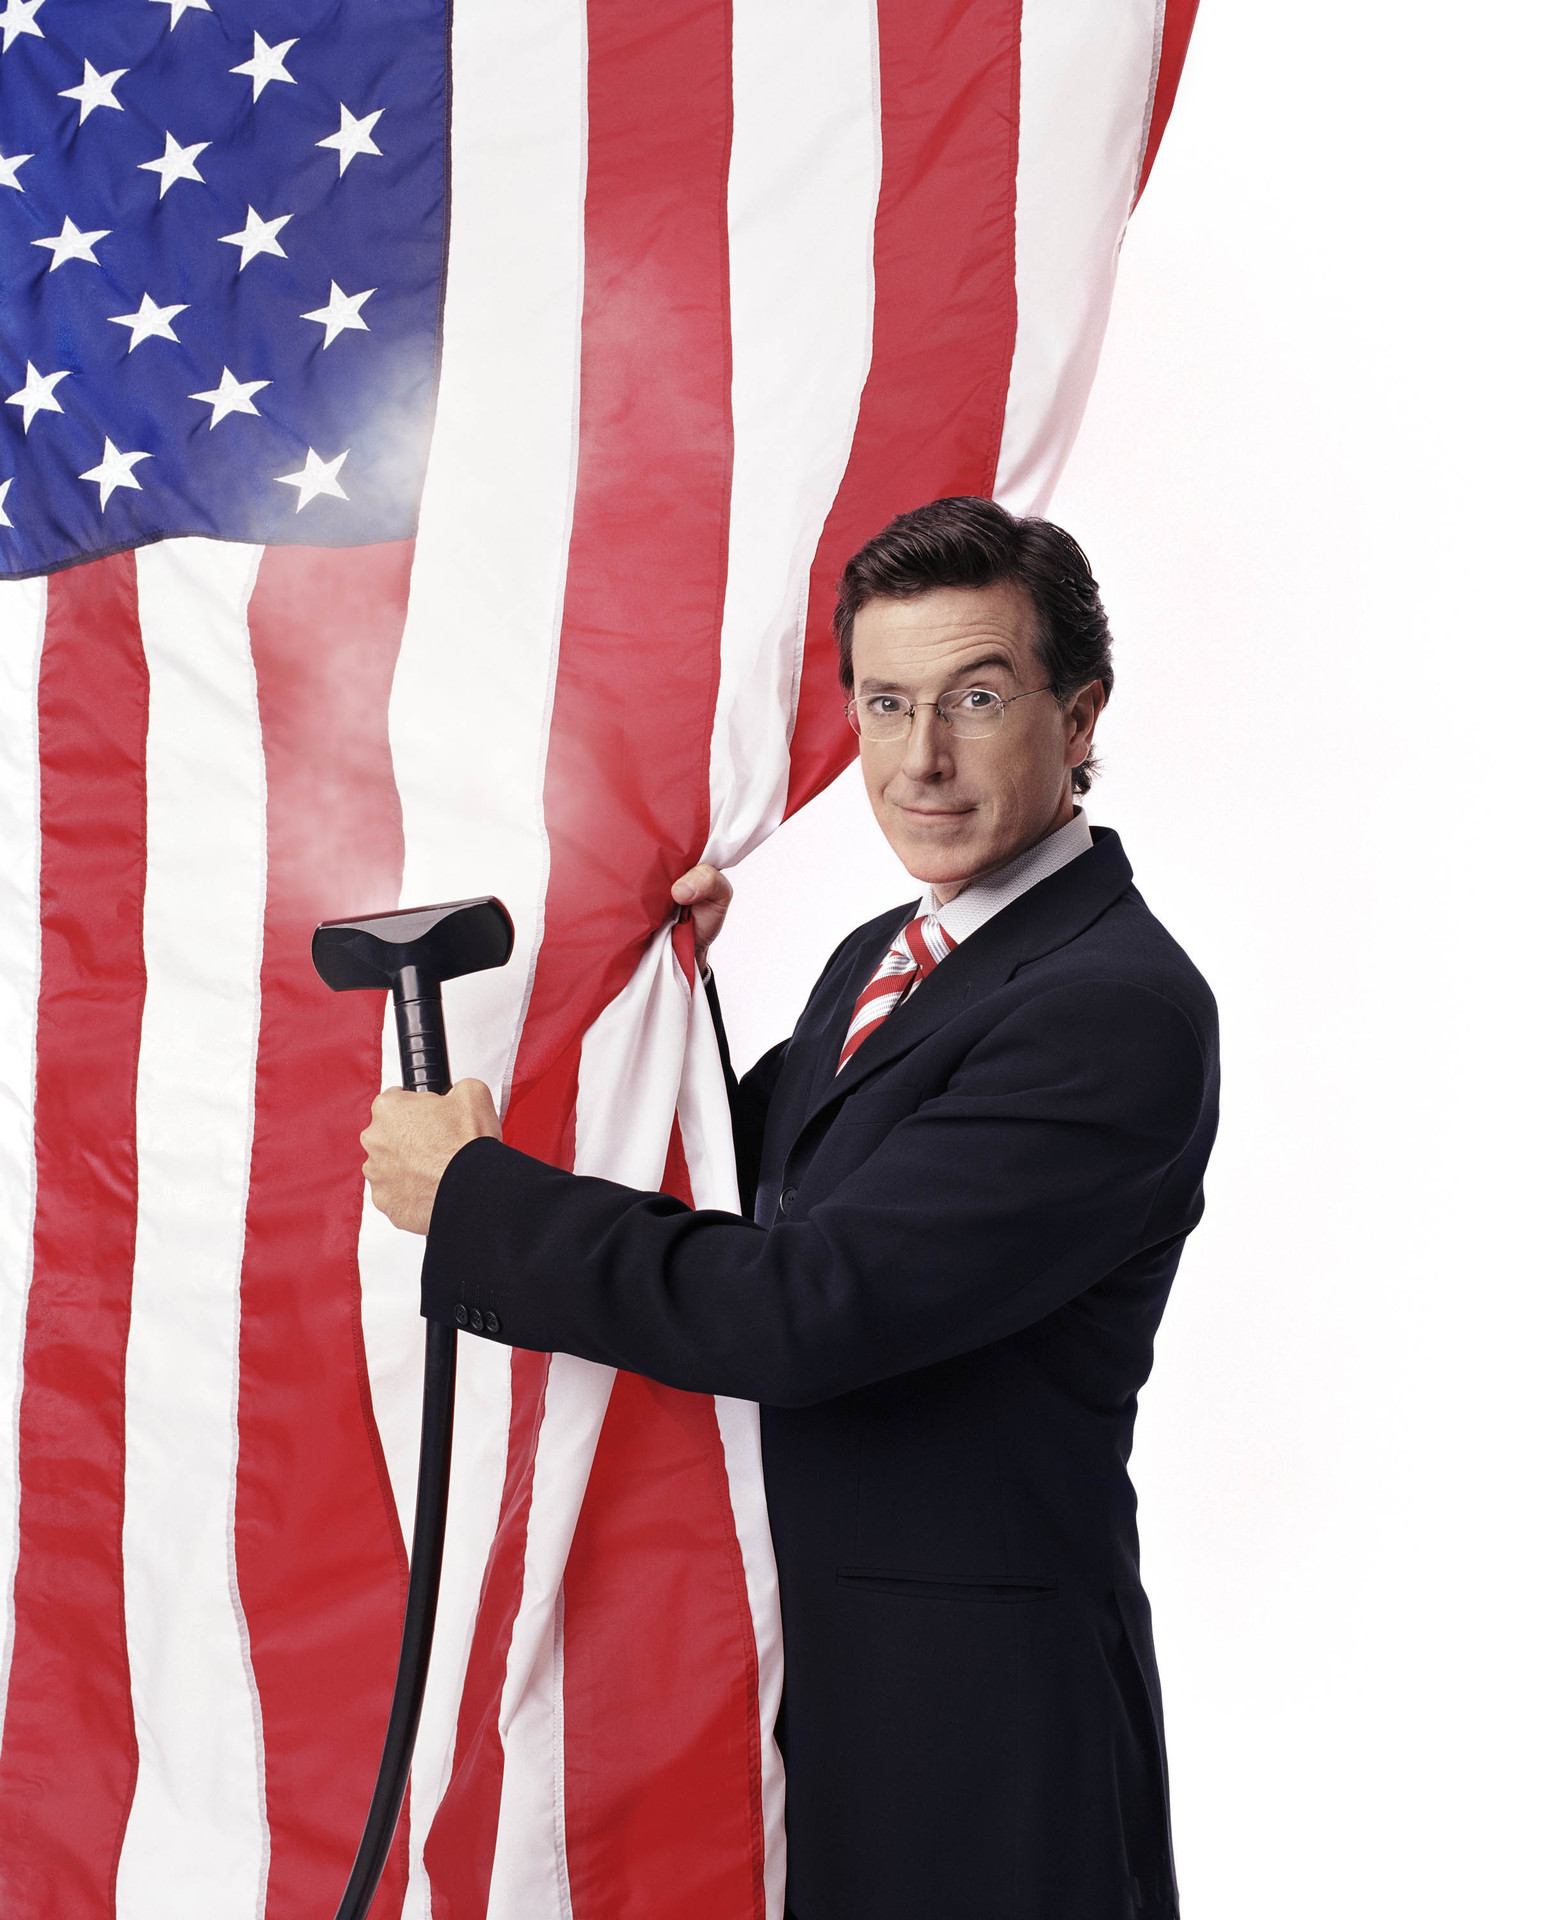 Stephen Colbert images Cleaning the Flag HD wallpaper and 1554x1920